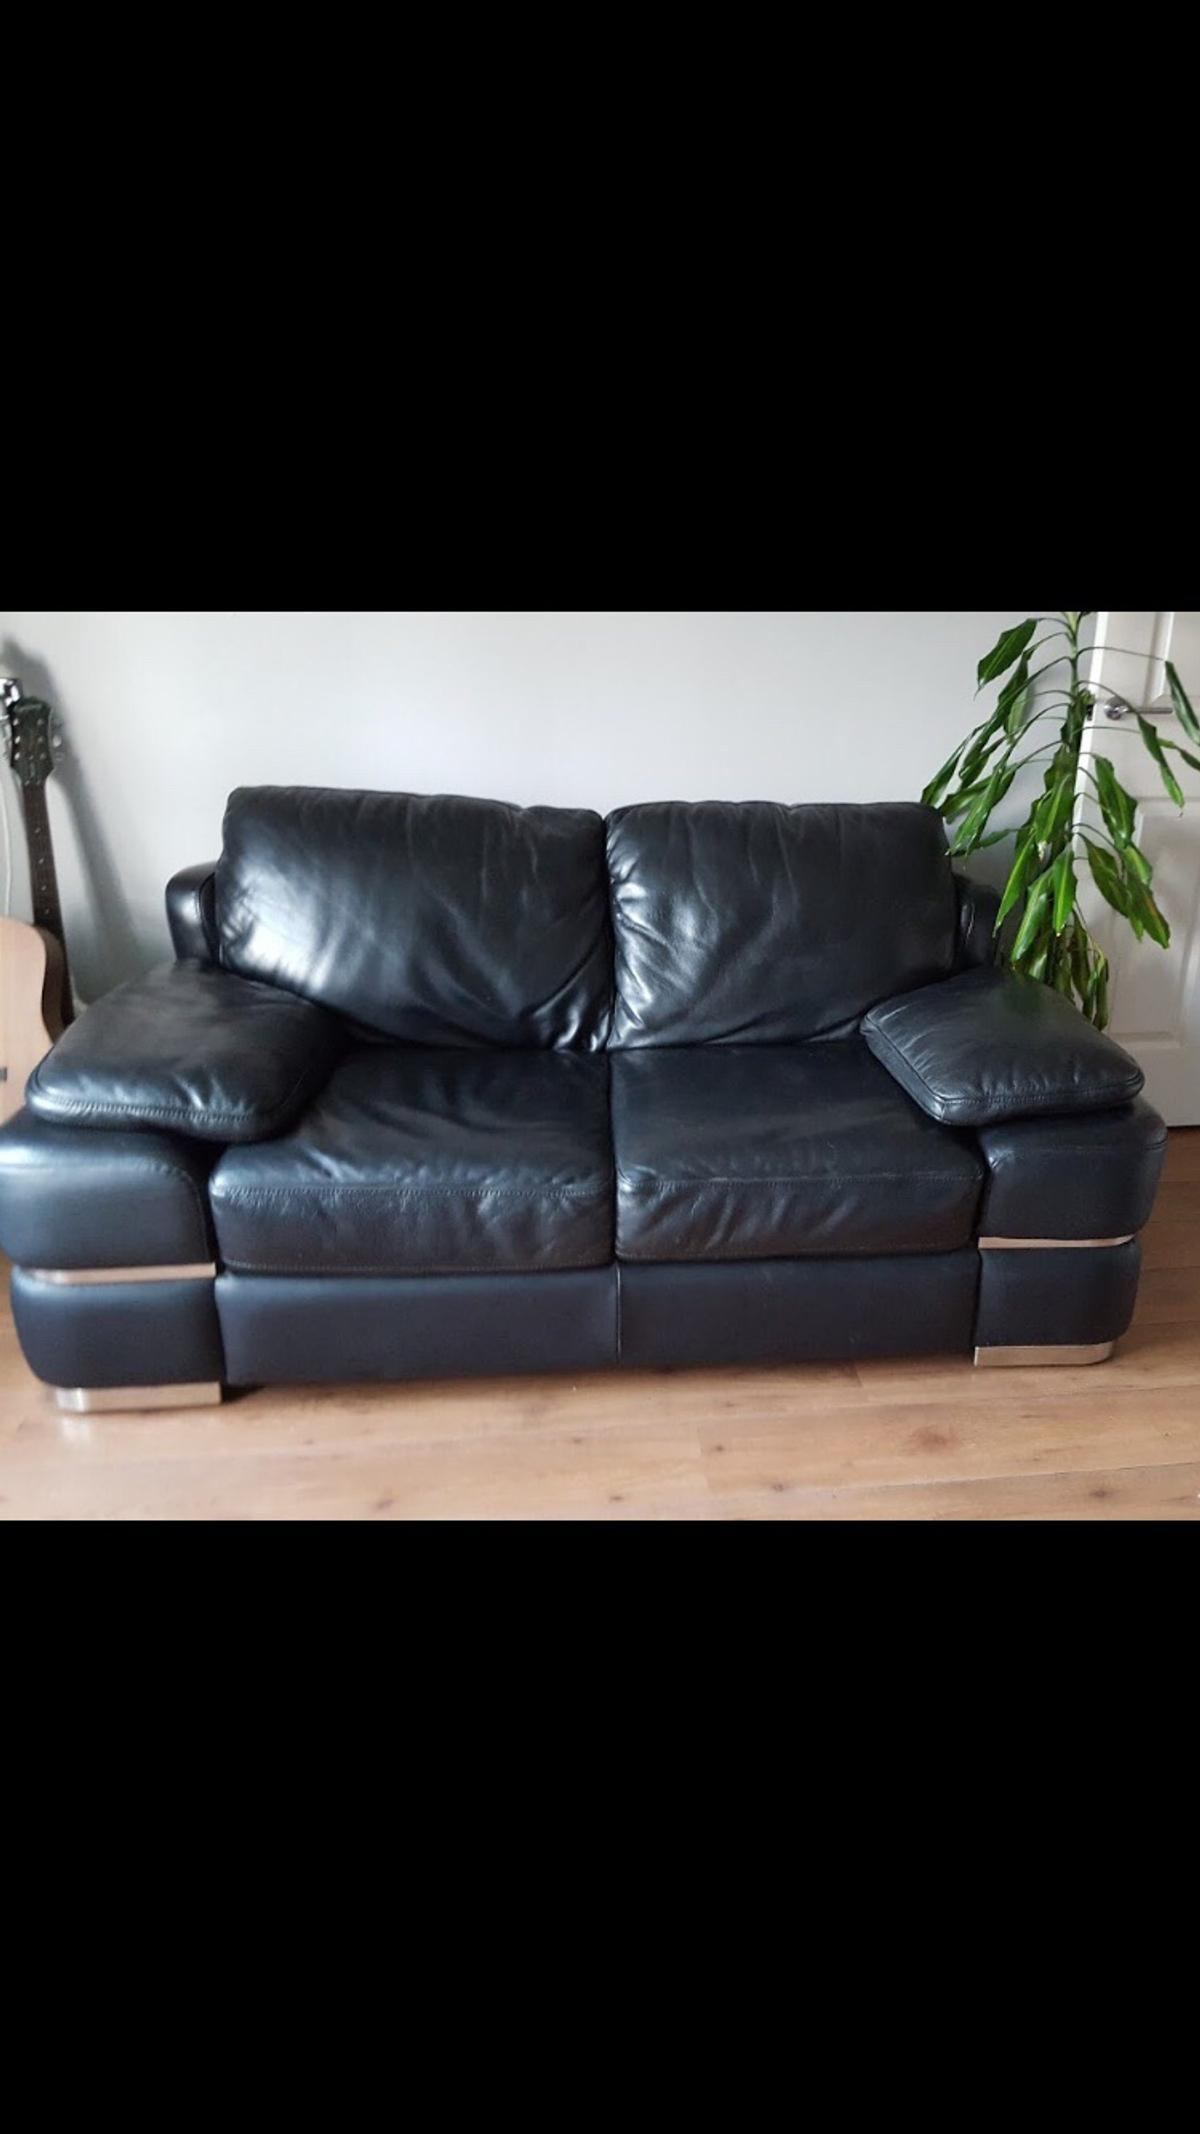 Designer leather sofa and chair